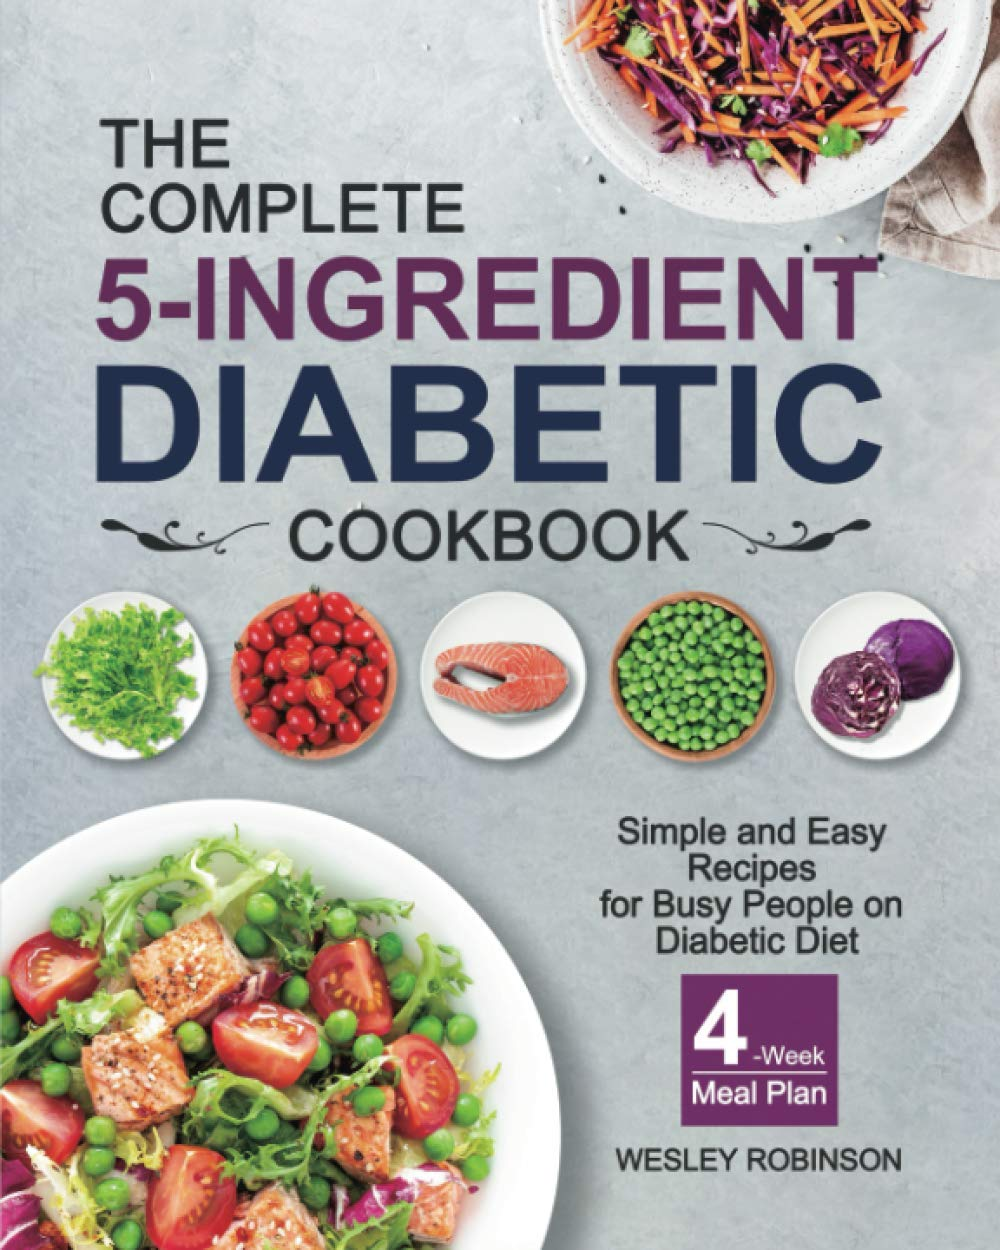 The Complete 5-Ingredient Diabetic Cookbook: Simple and Easy Recipes for Busy People on Diabetic Diet with 4-Week Meal Plan